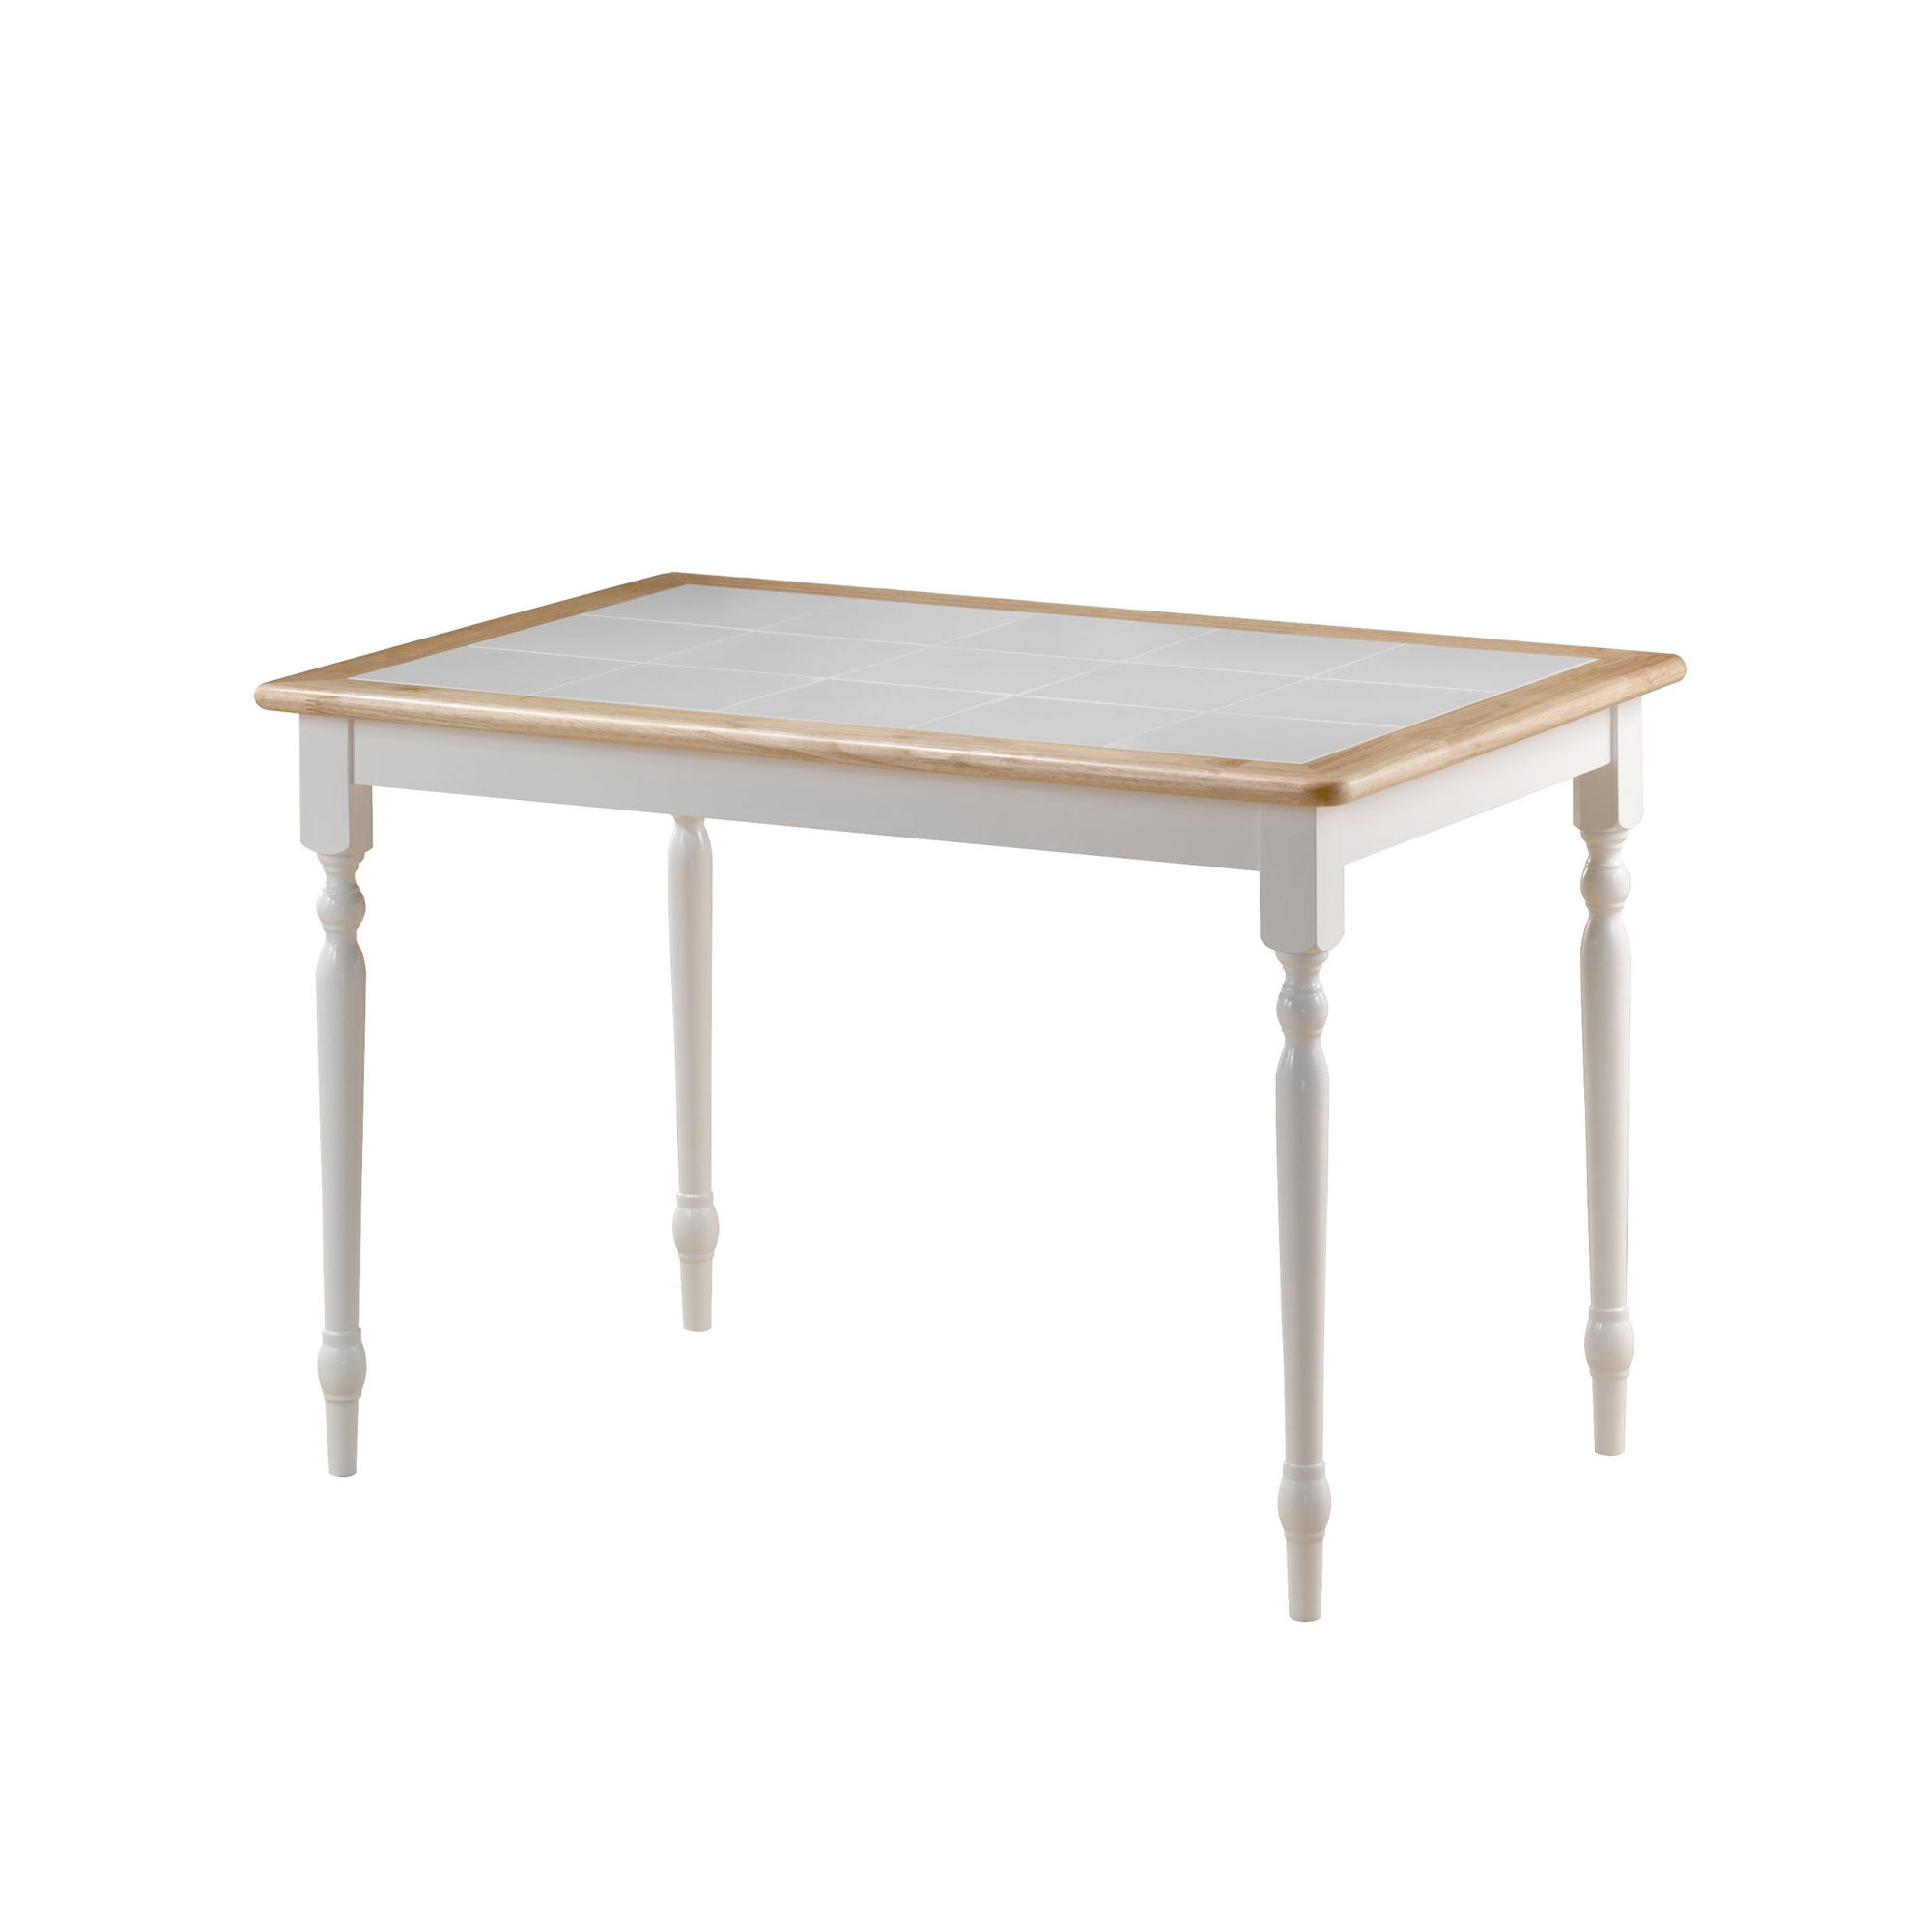 dining tables walmart photo - 6